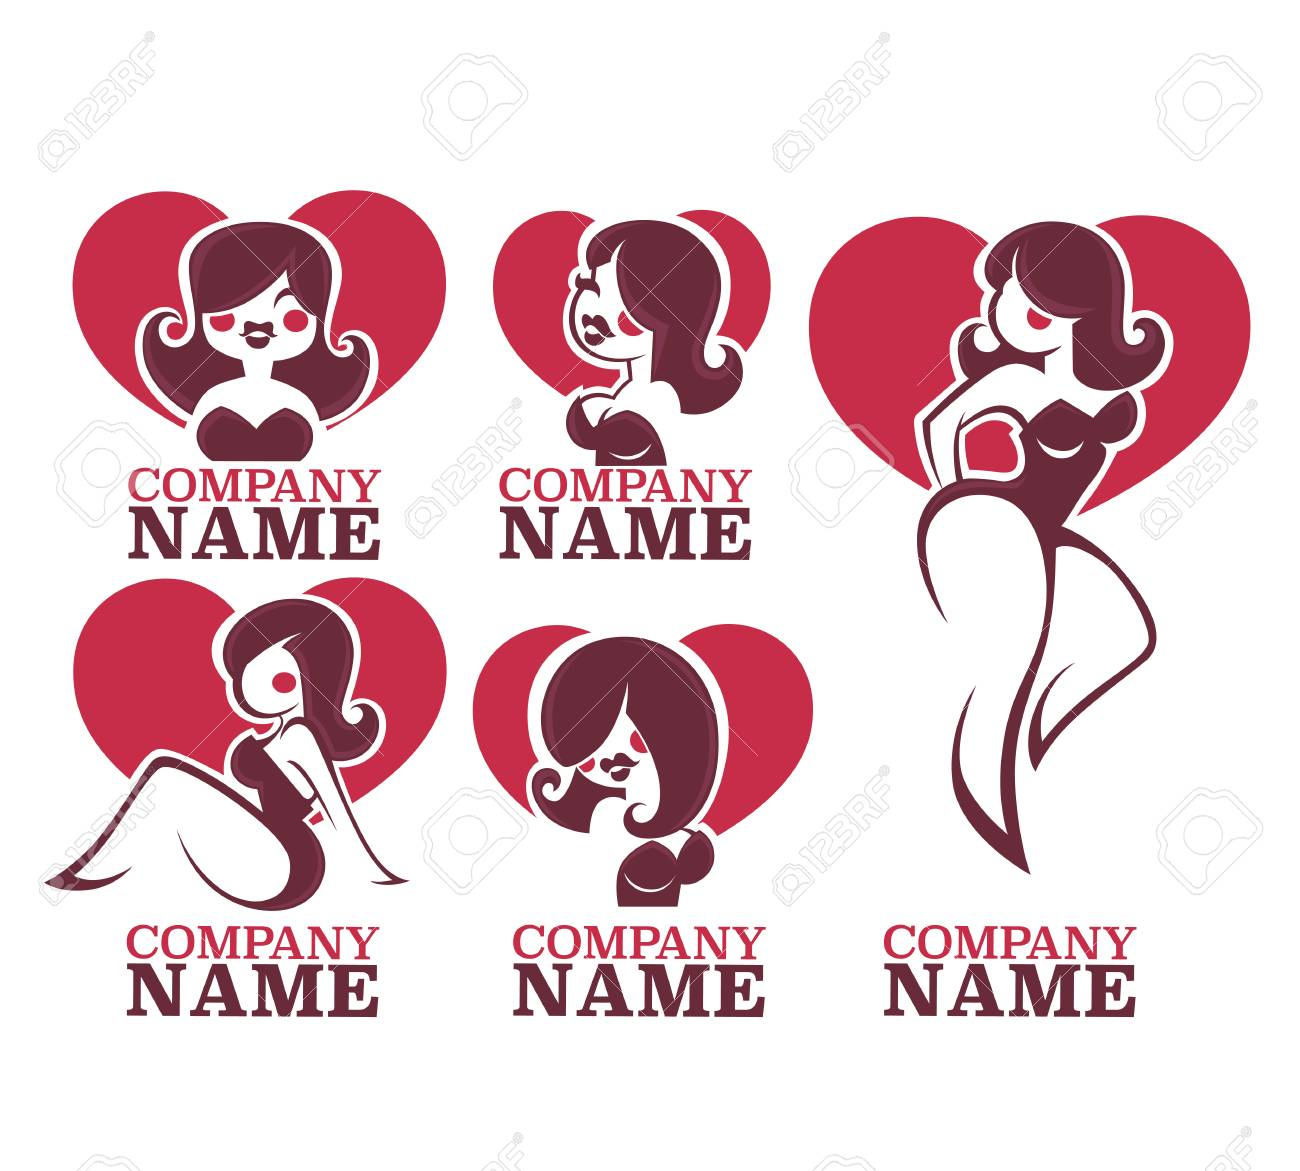 vector collection of pinup girls illustration and logo royalty free